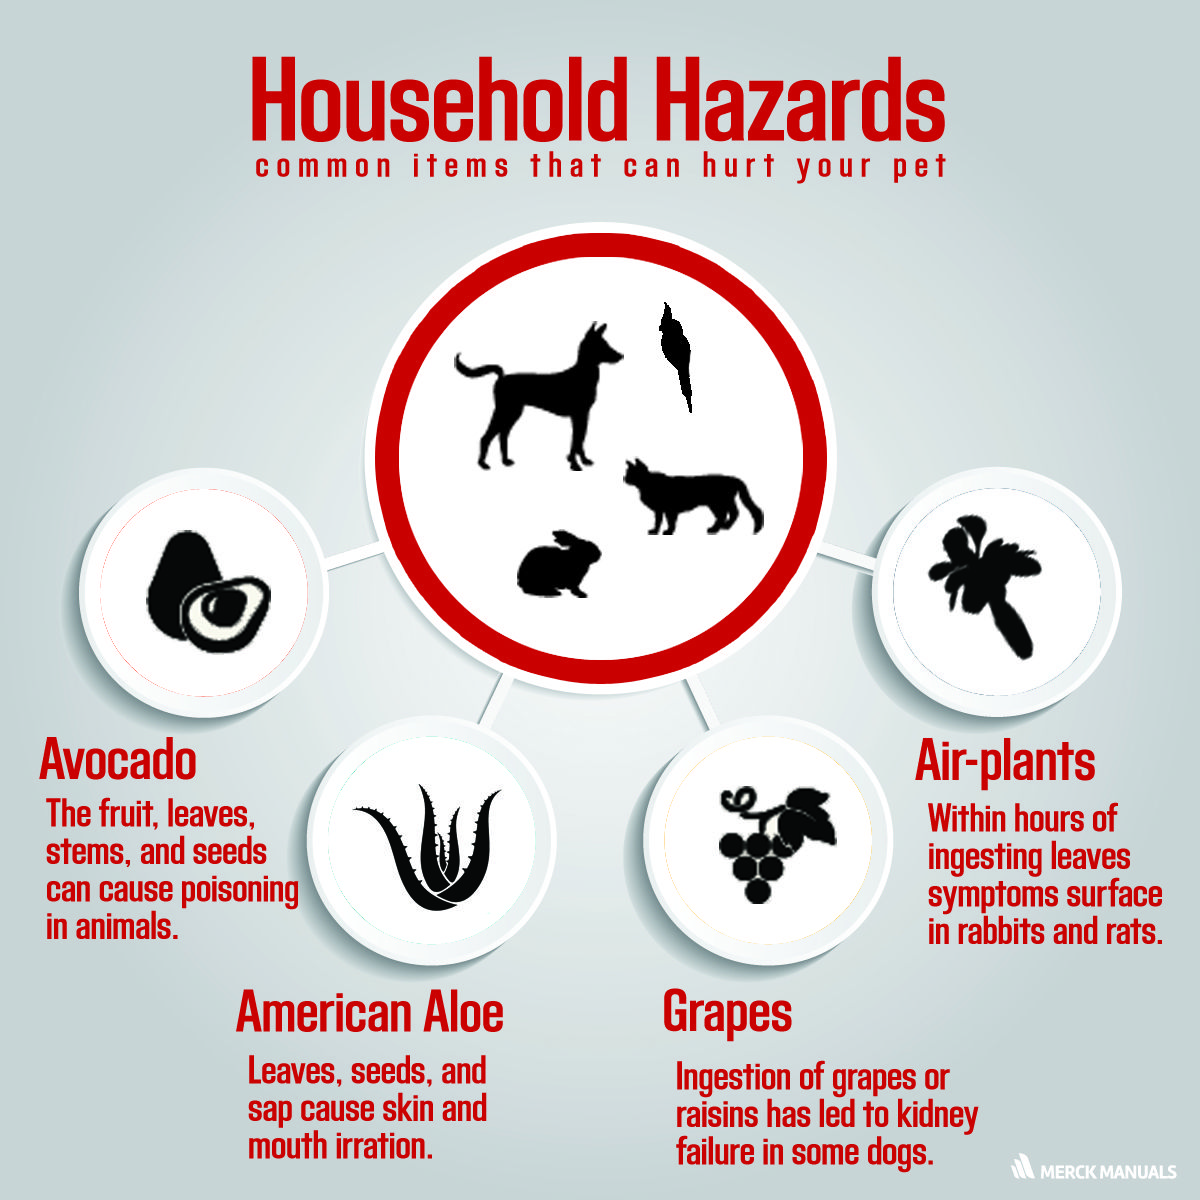 learn more about common pet household hazards merck veterinary rh pinterest com Veterans Guide VRA Eligibility